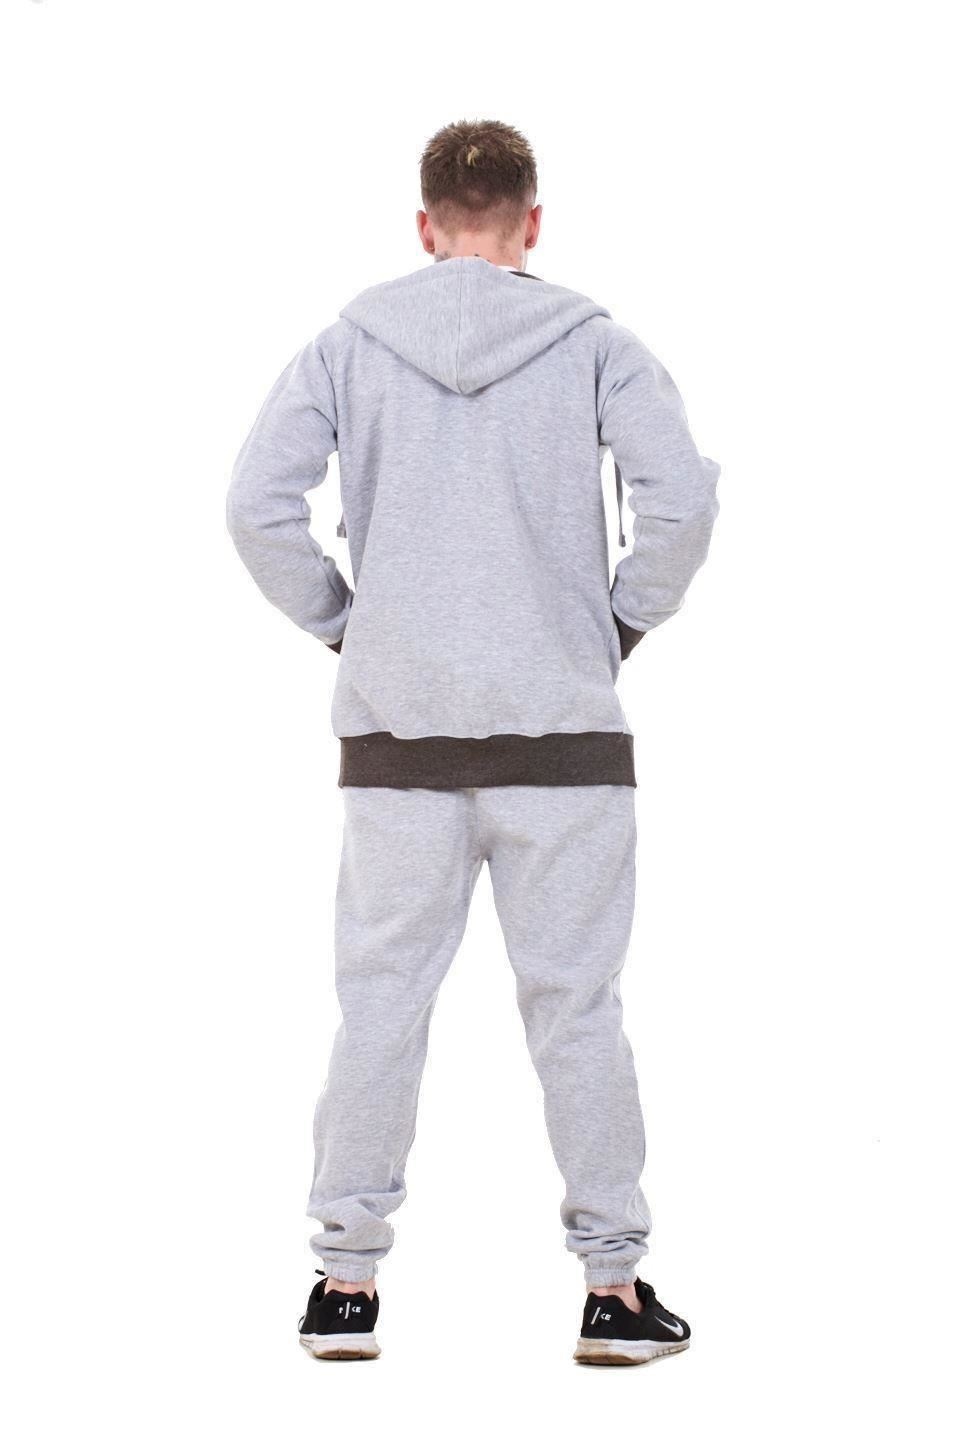 New-Mens-Tracksuit-Branded-Fleece-Hooded-Zipper-Cotton-Jogging-Bottoms-S-to-XXL thumbnail 10